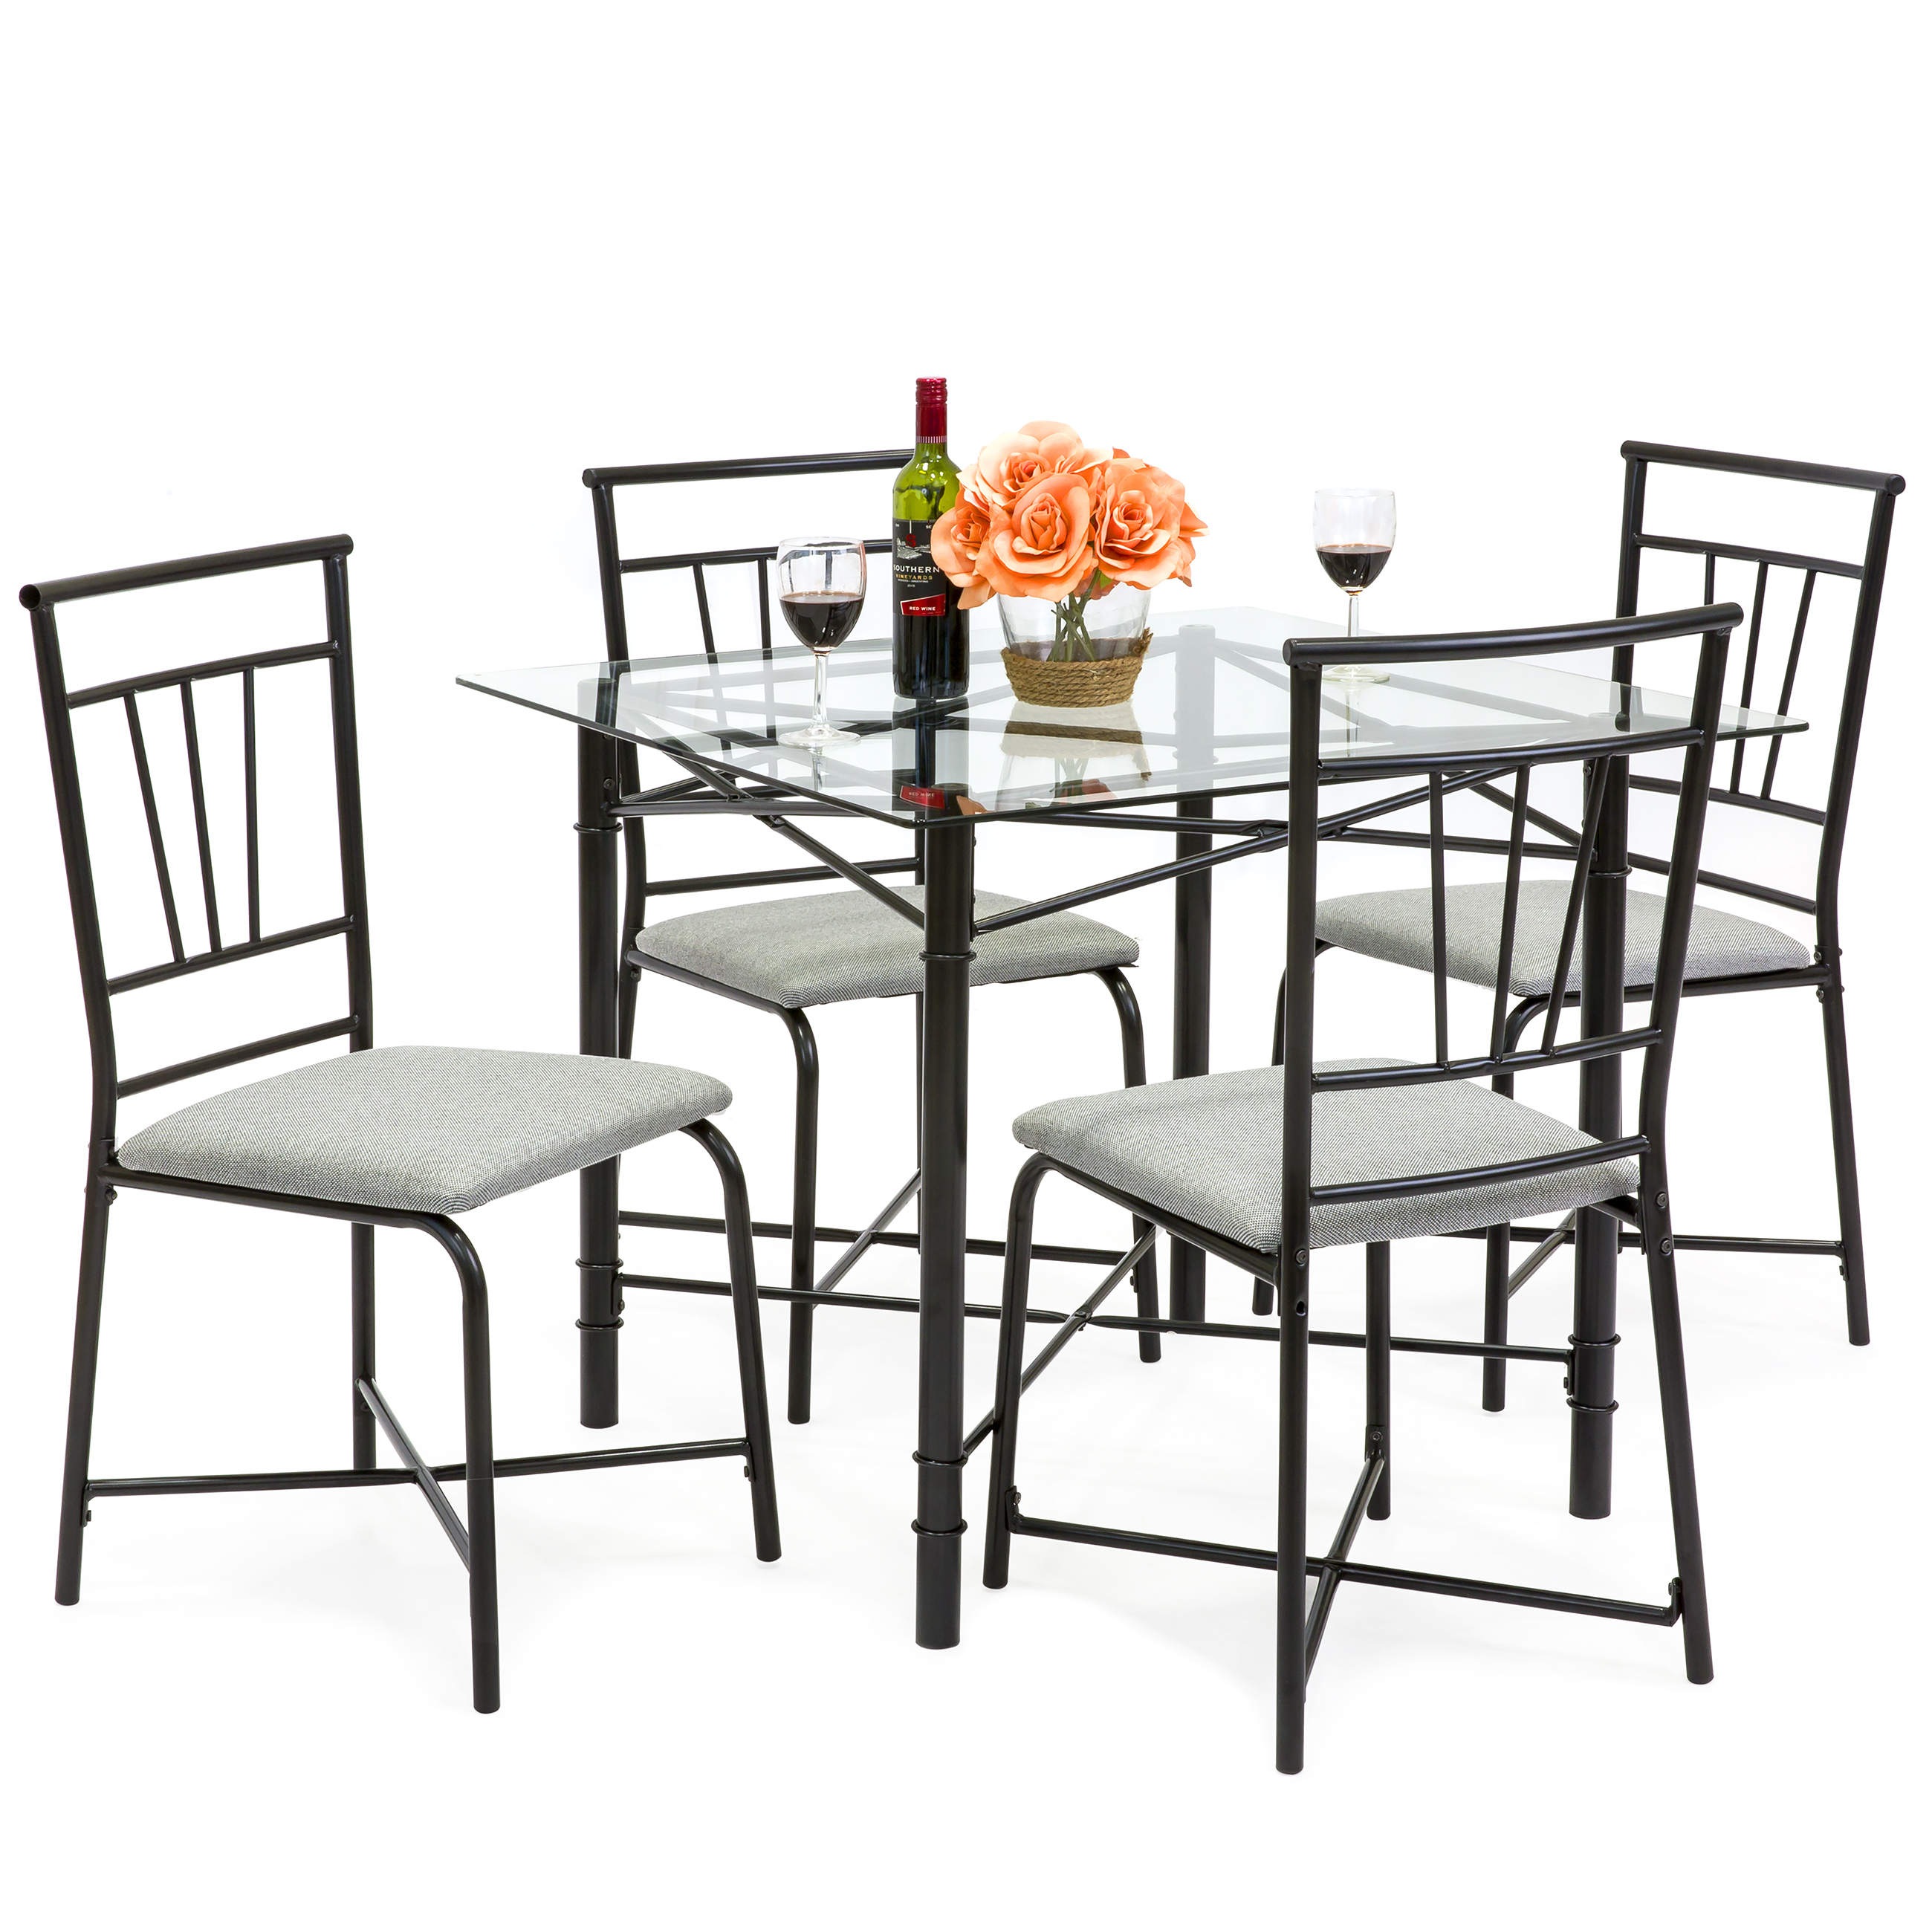 Genial Best Choice Products 5 Piece Square Glass Dining Table Set W/ 4 Upholstered  Chairs